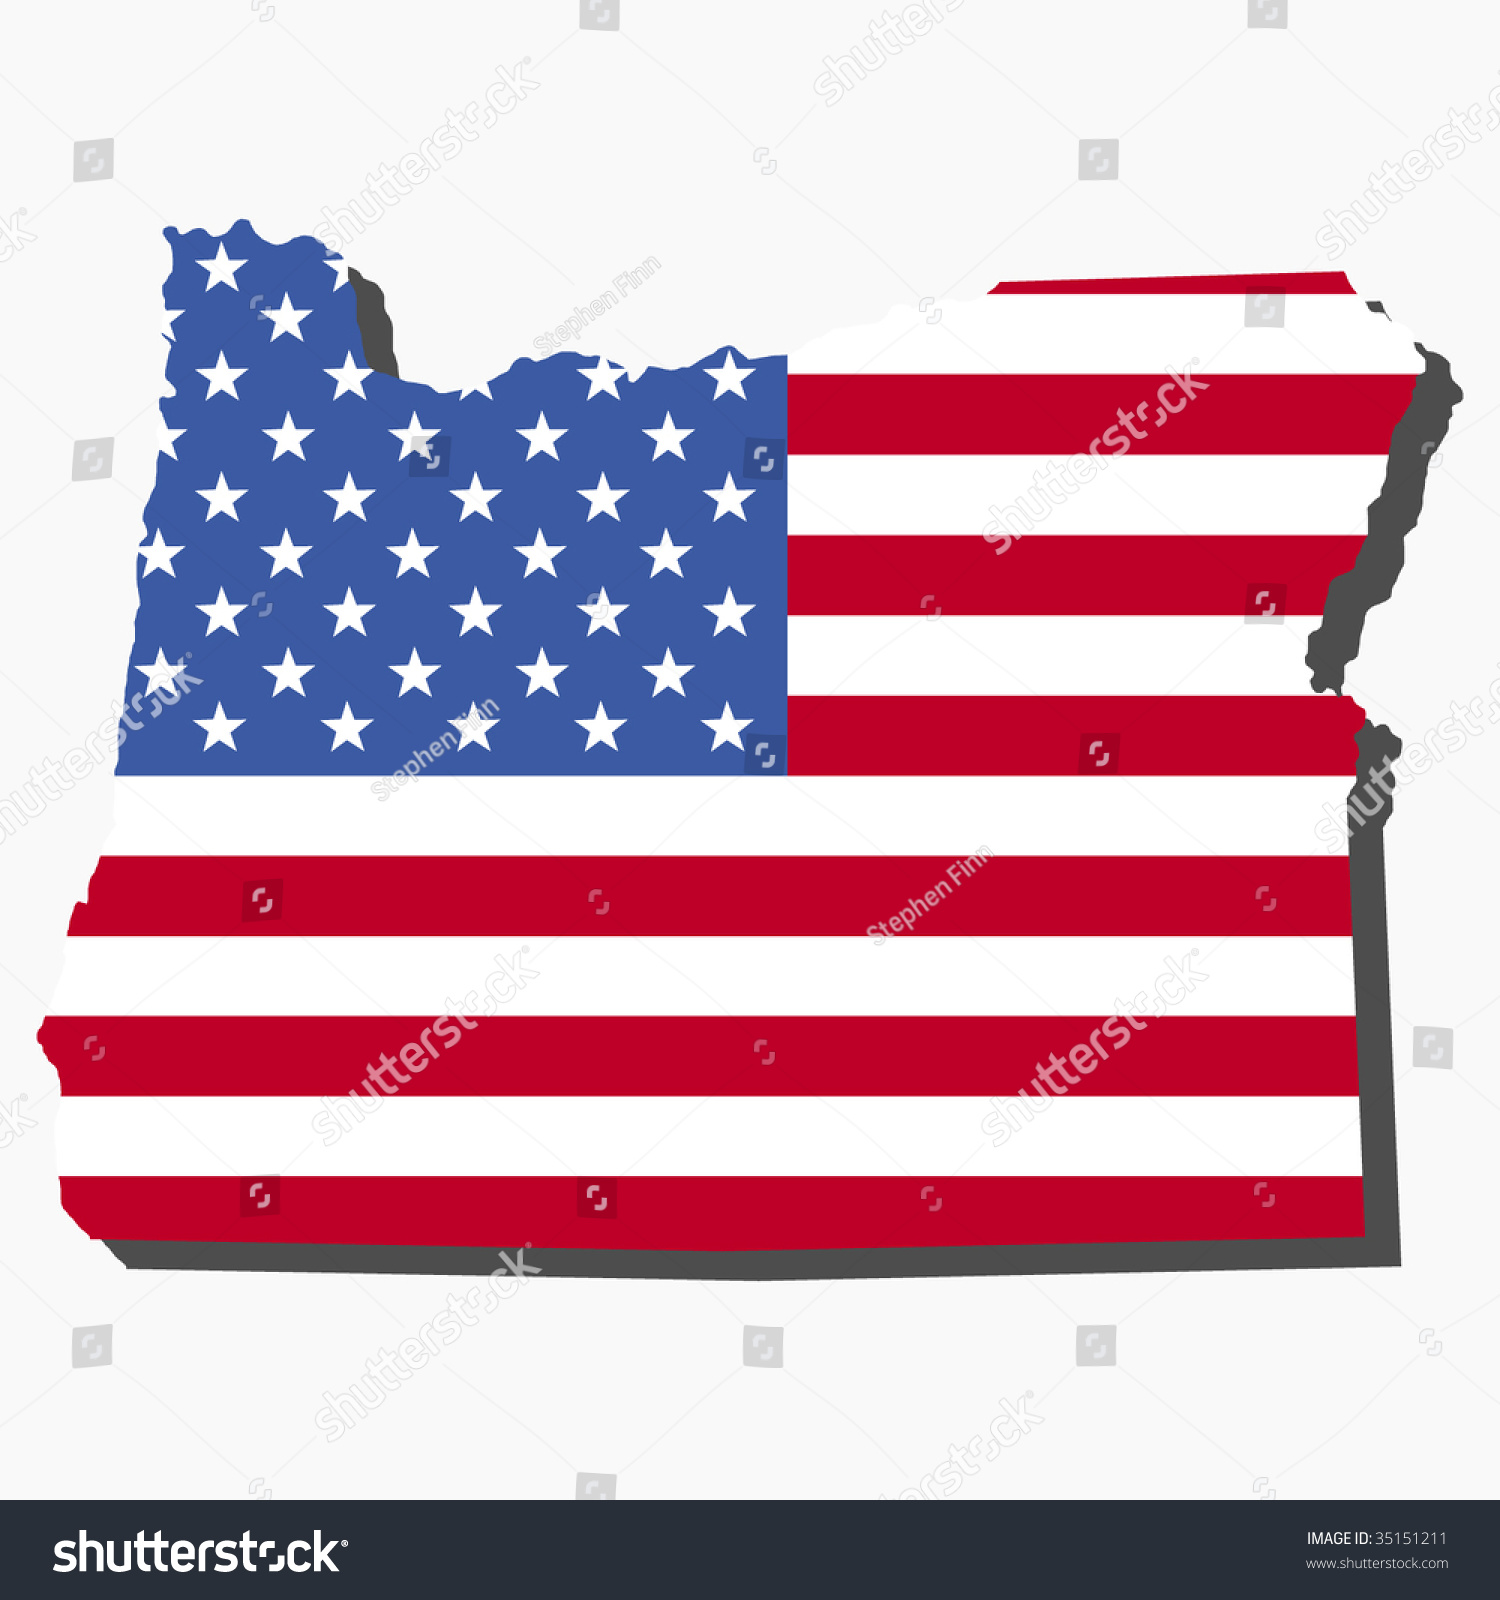 Map State Oregon American Flag Illustration Stock Vector - Map of oregon state usa